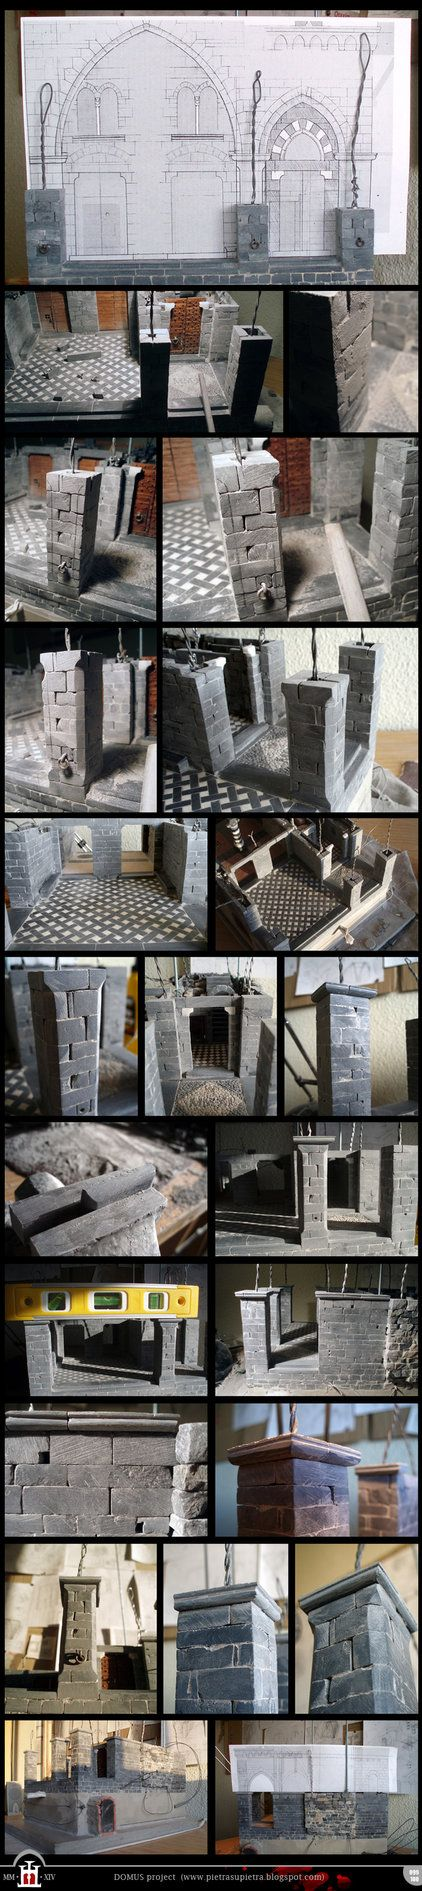 Dp 99-100: Stone pillars and string-course by Wernerio on DeviantArt